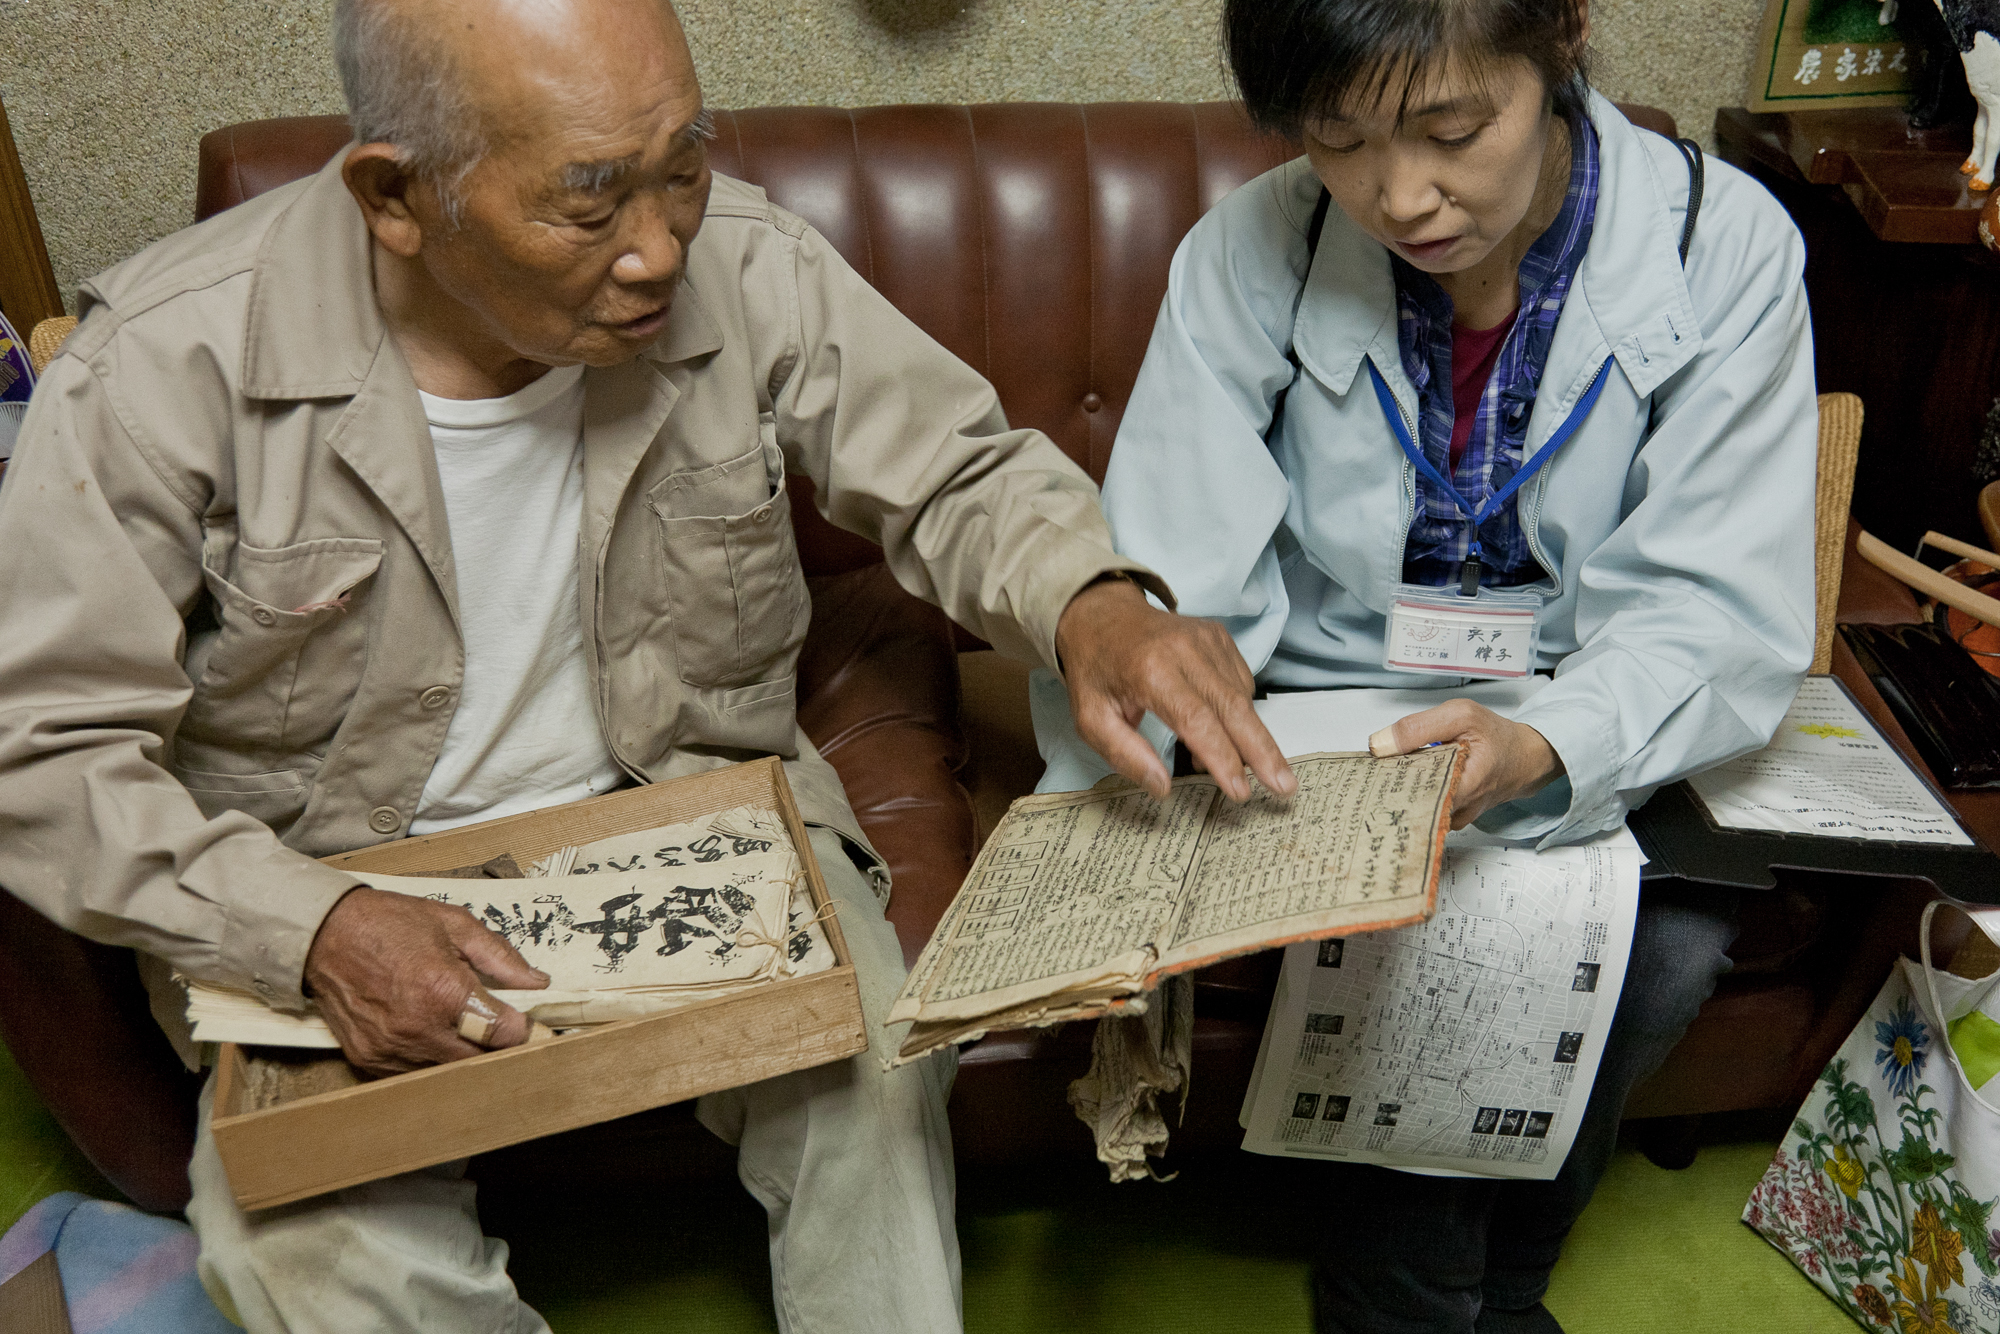 Yichi Takagishi explains his family history documents, some dating from over 200 years ago.